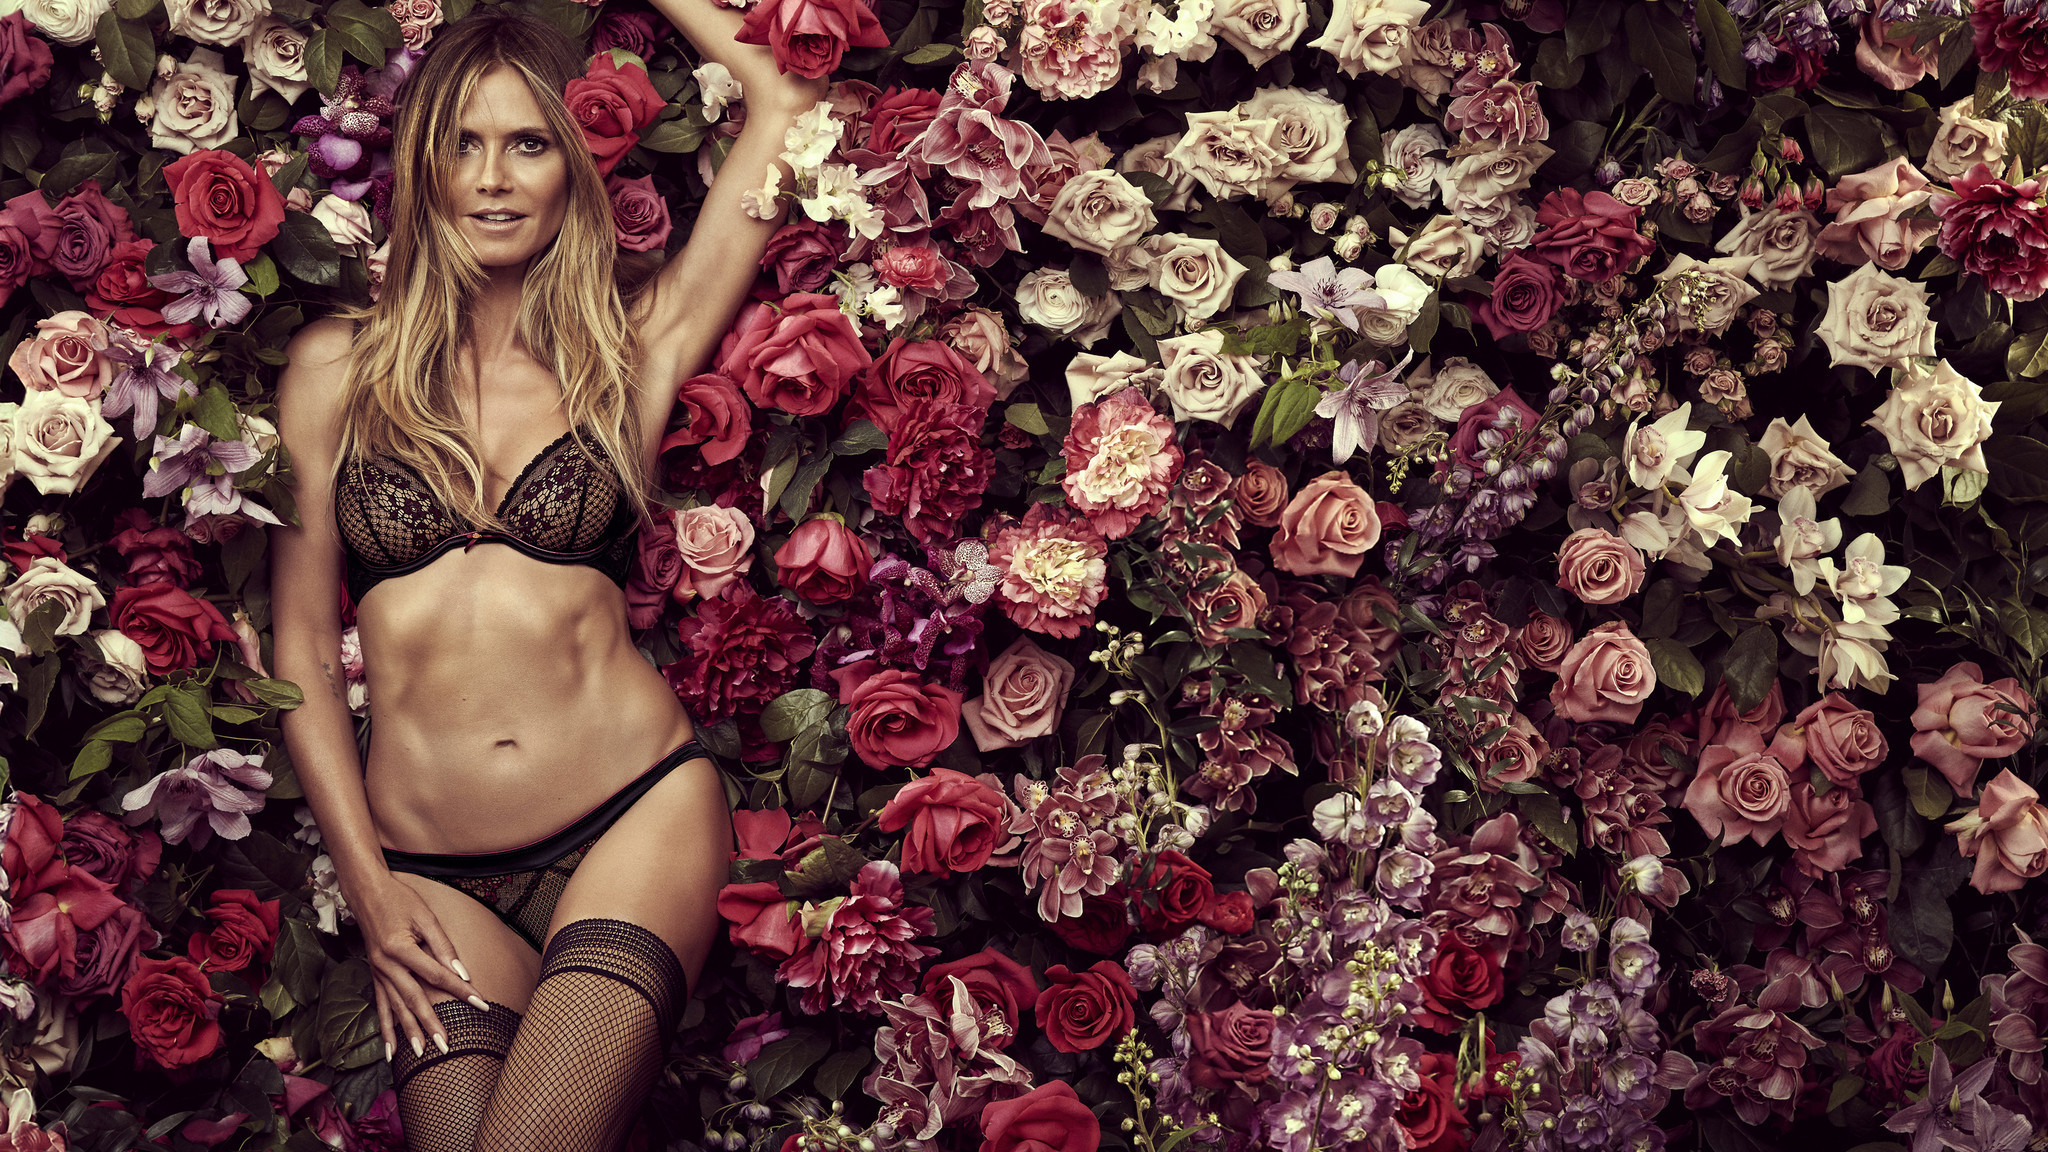 Heidi Klum says fit and lace are important factors for her intimate apparel  line called Heidi d58268b77